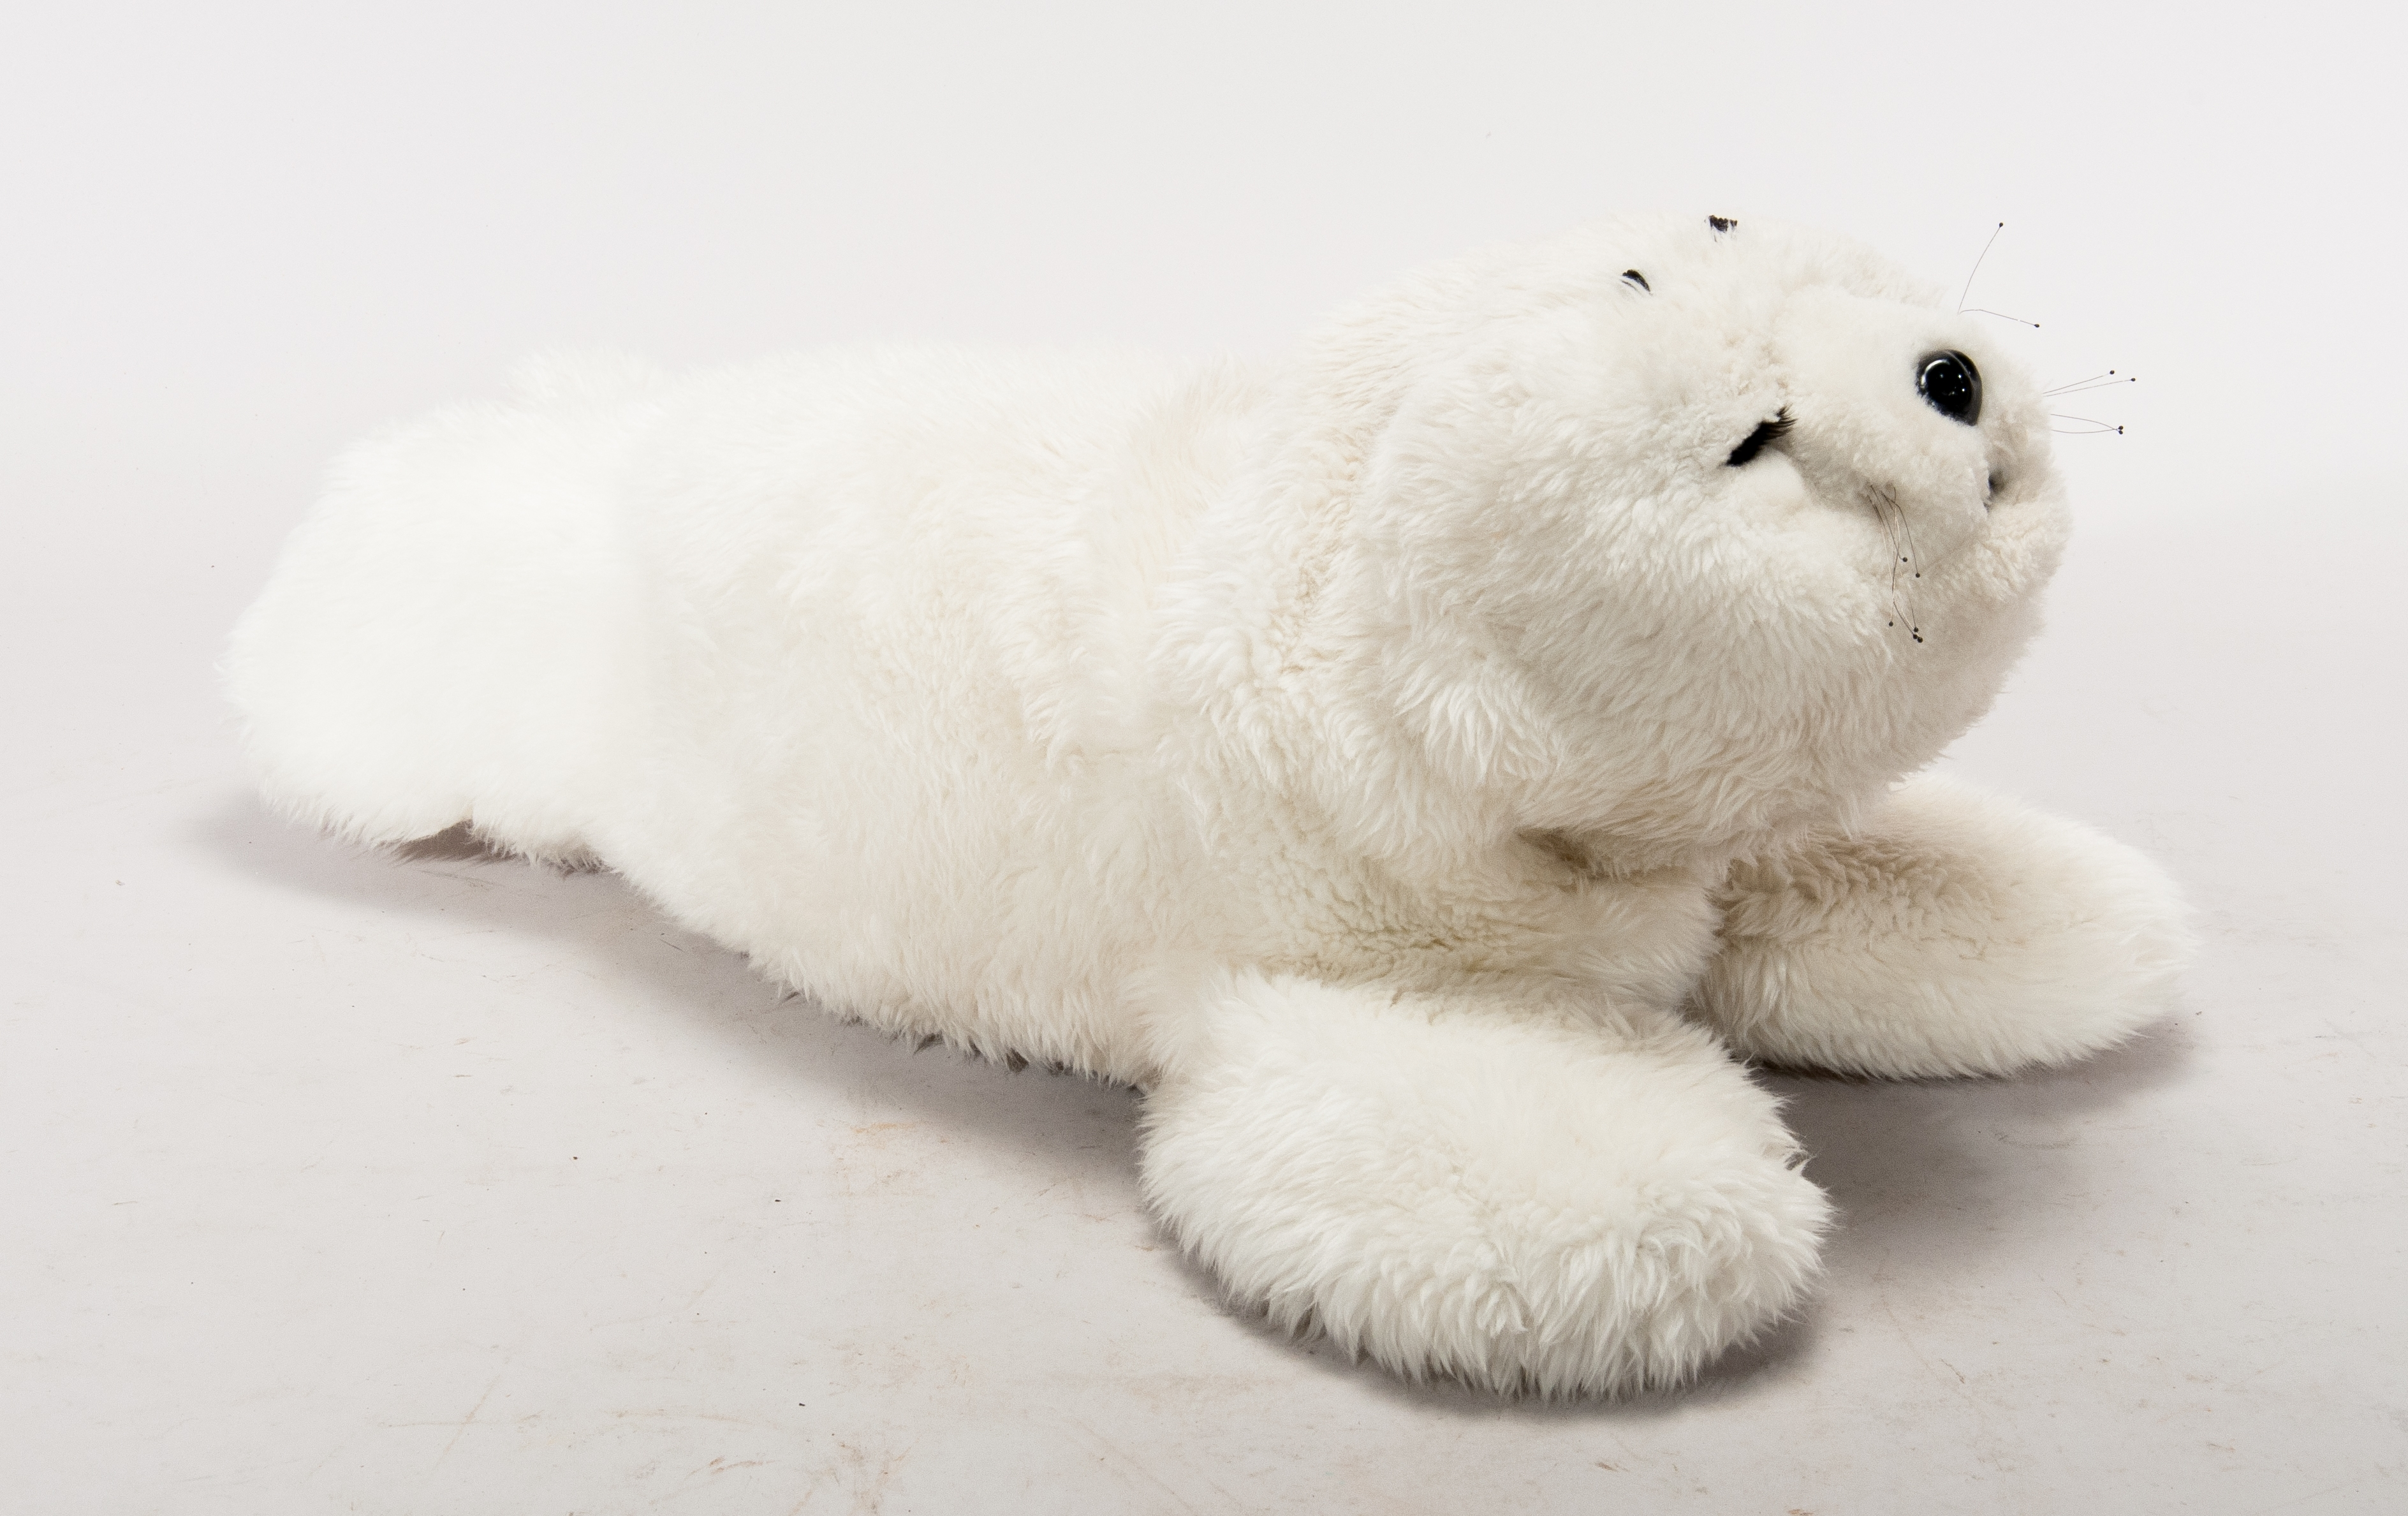 Paro robot, which resembles a plush seal toy. The seal is white and fluffy.